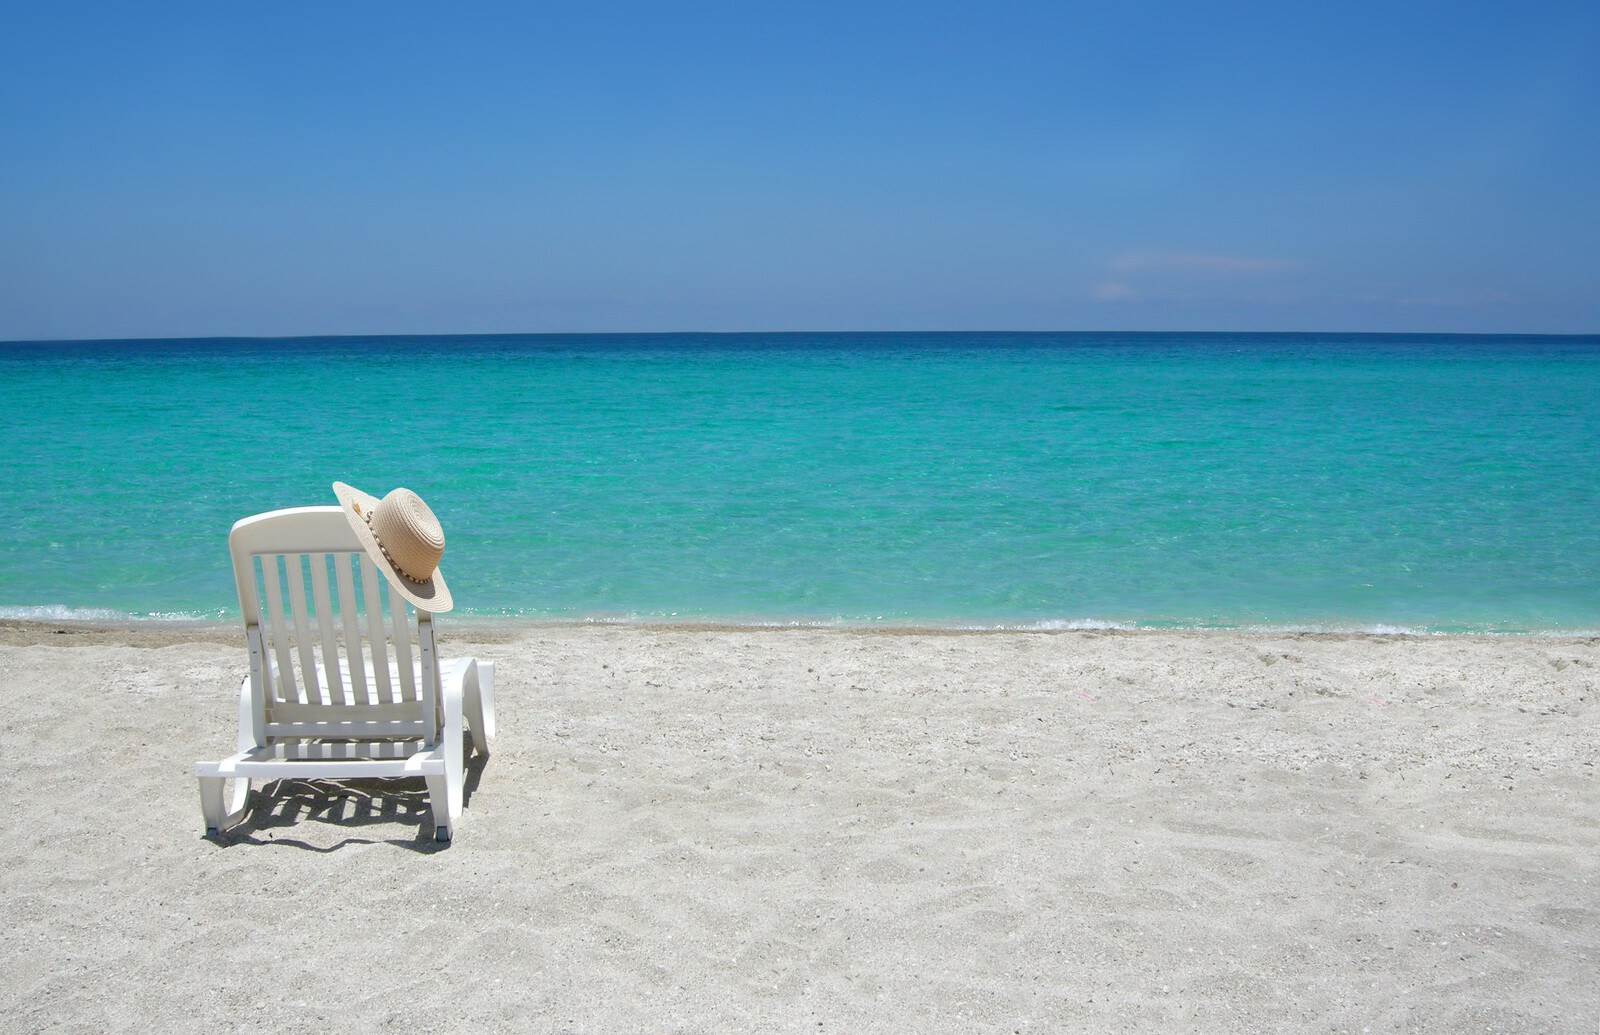 a white lounge chair with a hat resting on it on the white sand beach with clearn blue water and cloudless blue skies on a sunny day